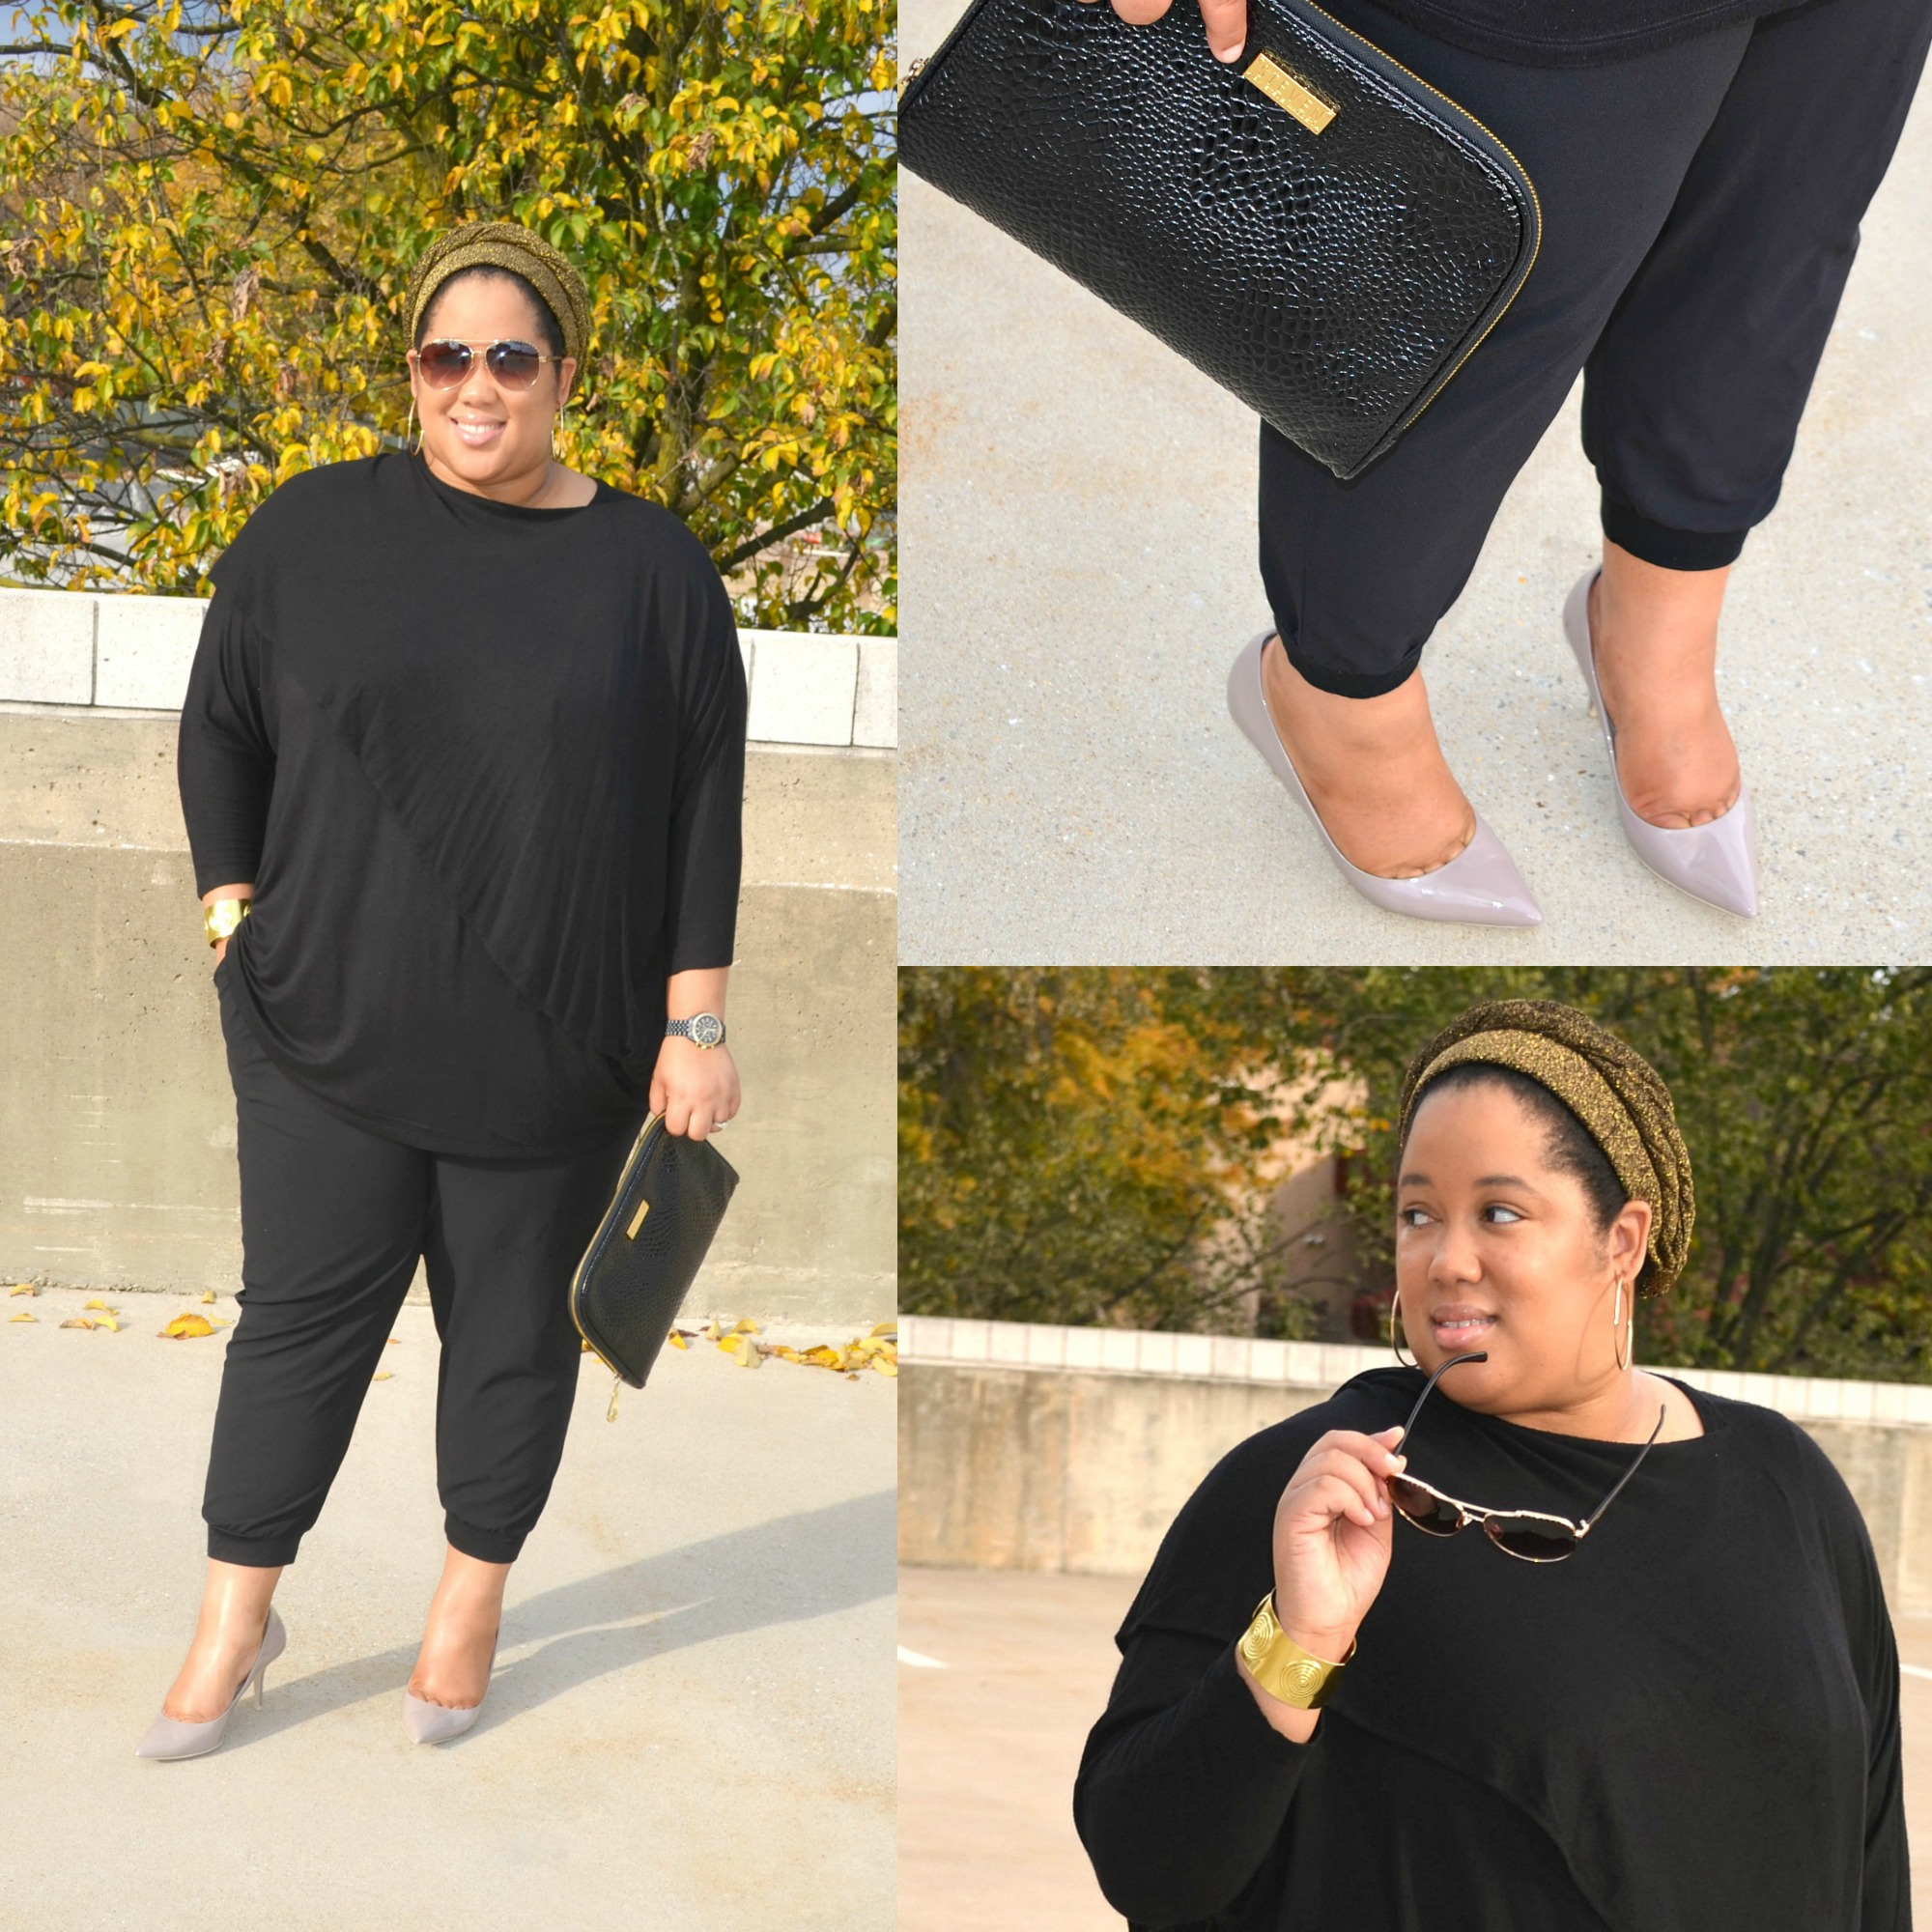 Details - All Black Outfit